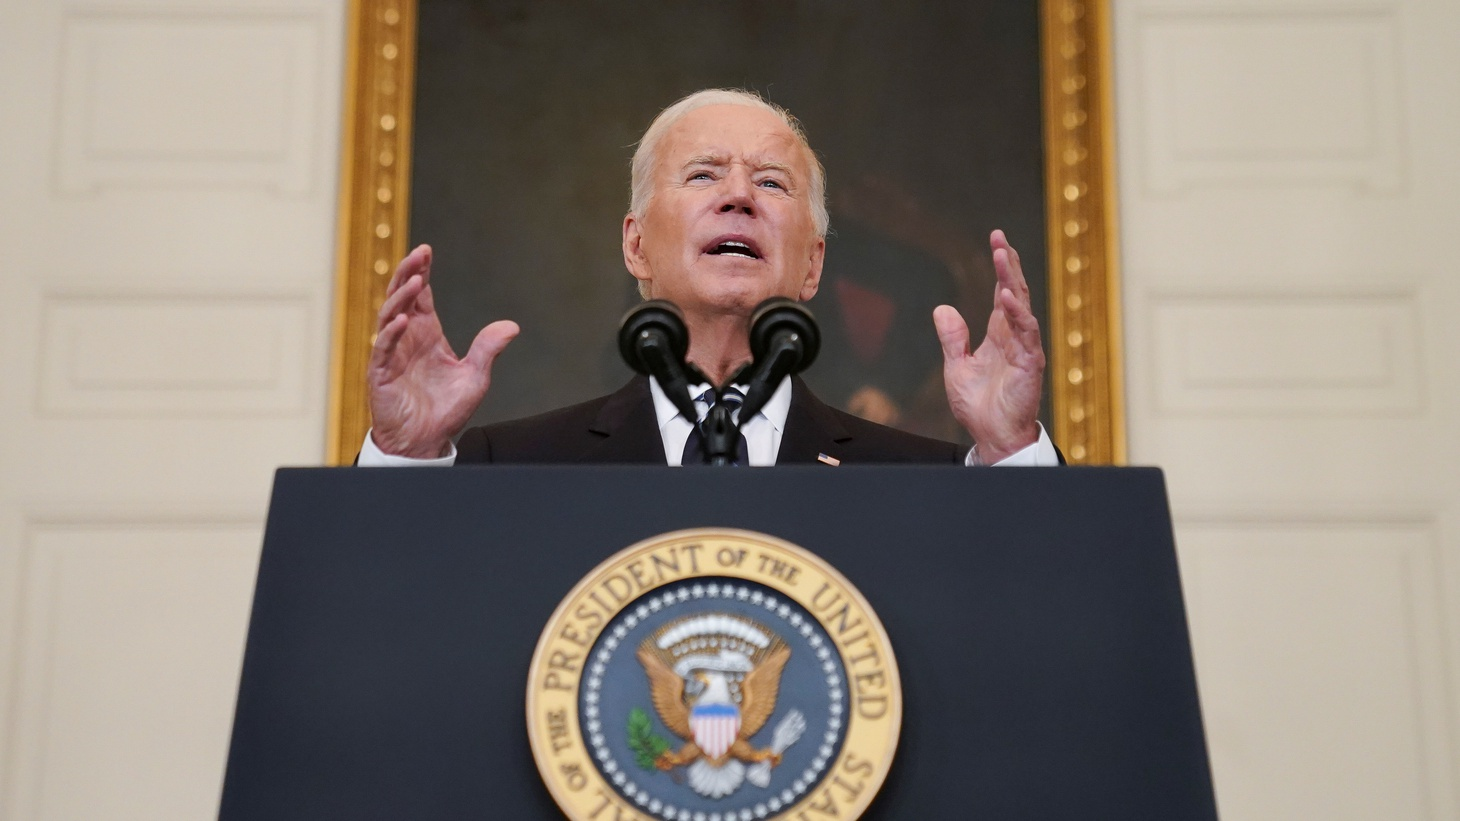 U.S. President Joe Biden delivers remarks on the Delta variant and his administration's efforts to increase vaccinations, from the State Dining Room of the White House in Washington, U.S., September 9, 2021.